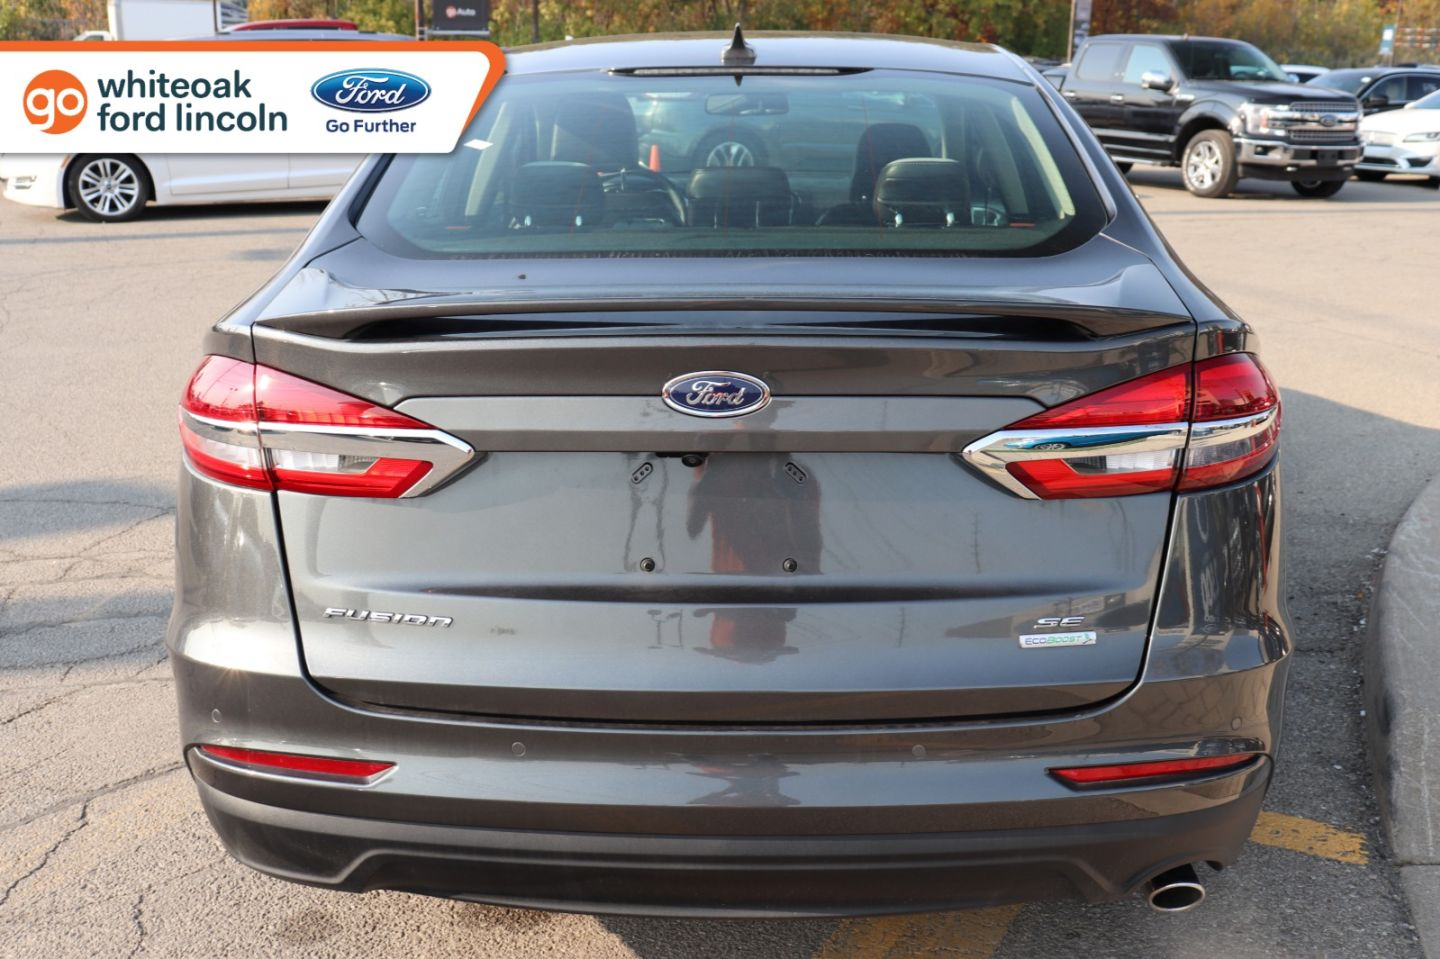 2020 Ford Fusion SE for sale in Mississauga, Ontario